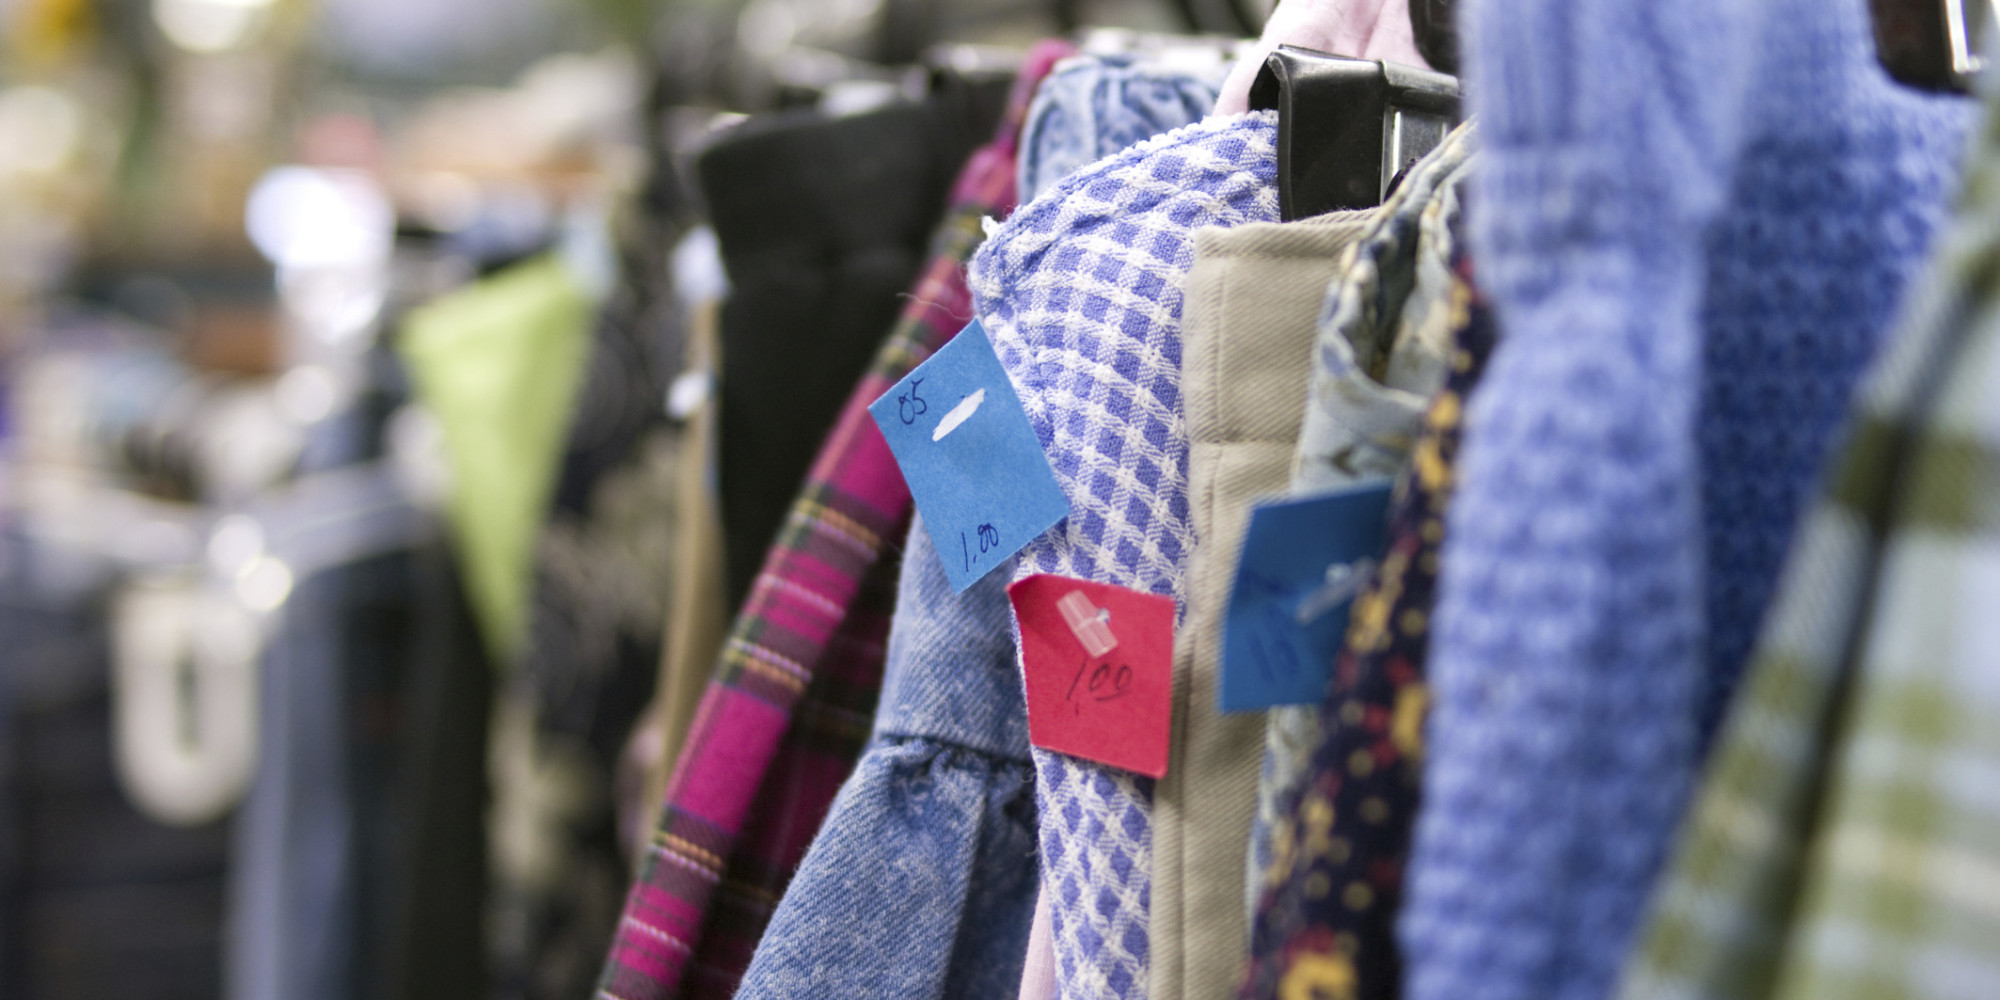 Twice, The Consignment Shop Of The Internet, Raises $18.5 Million